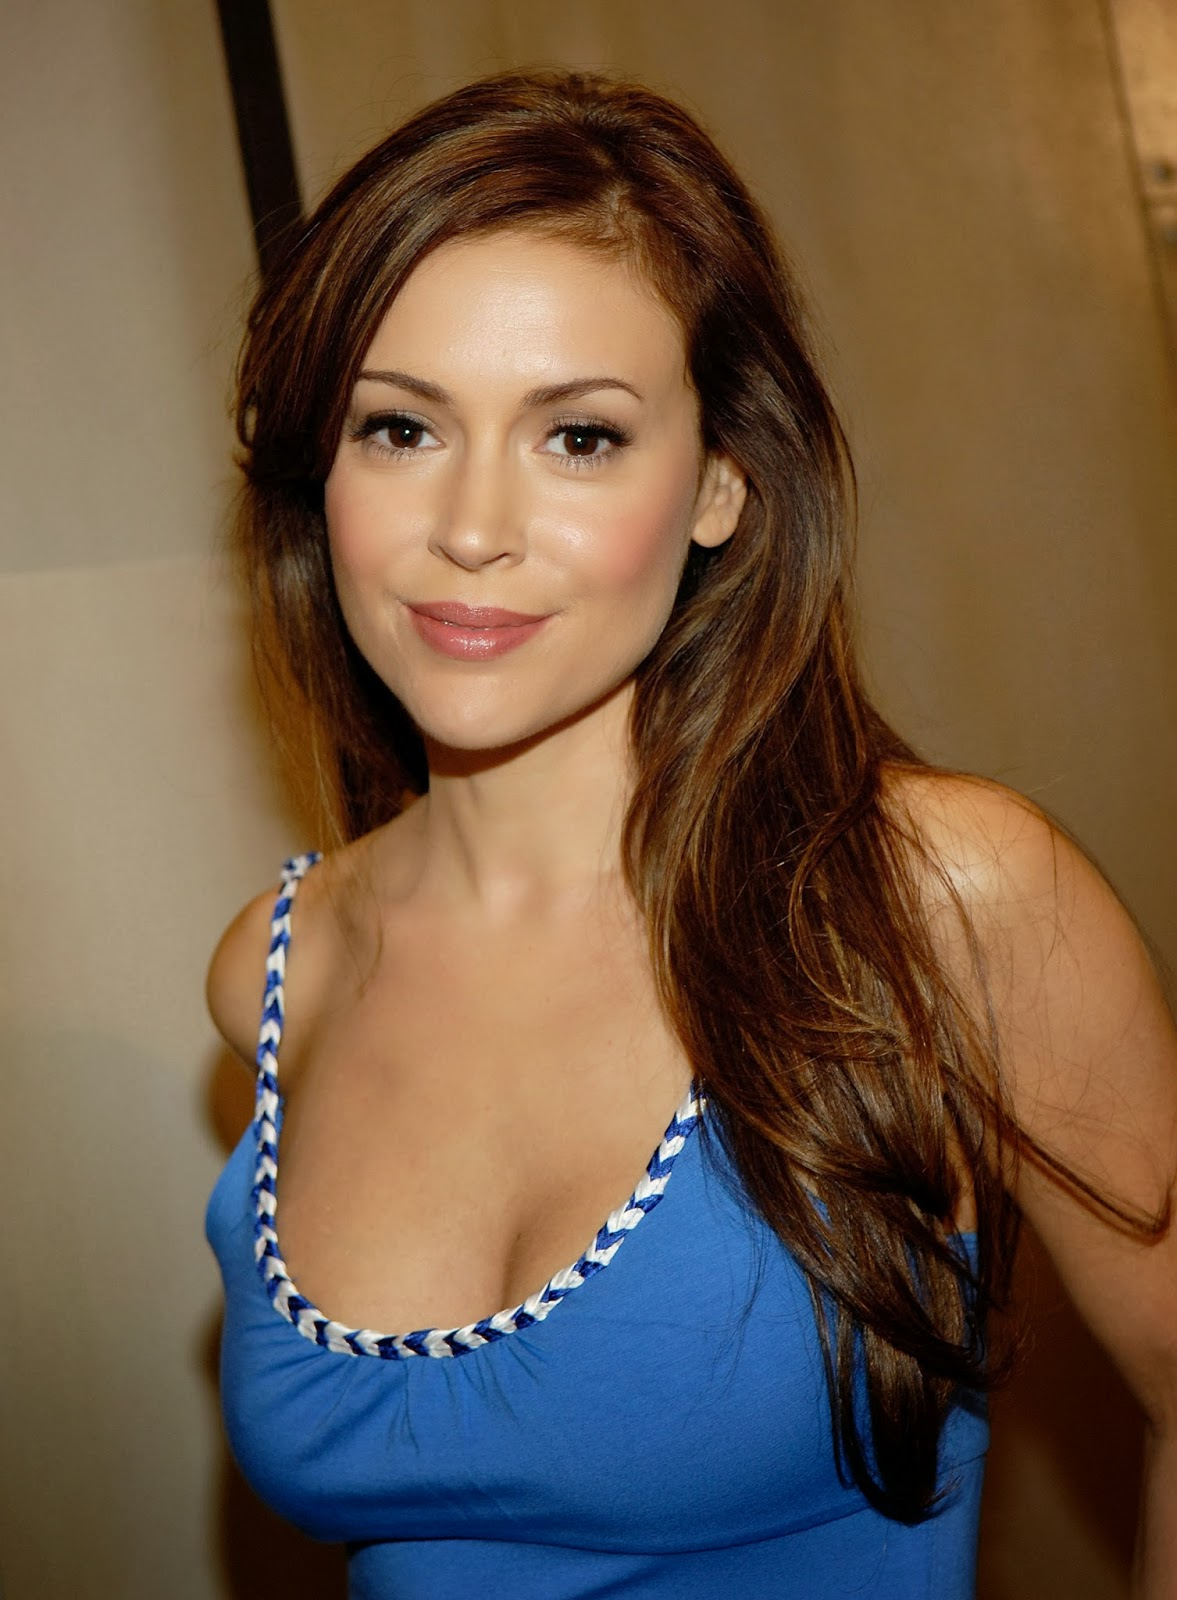 alyssa milano celebrities - photo #19